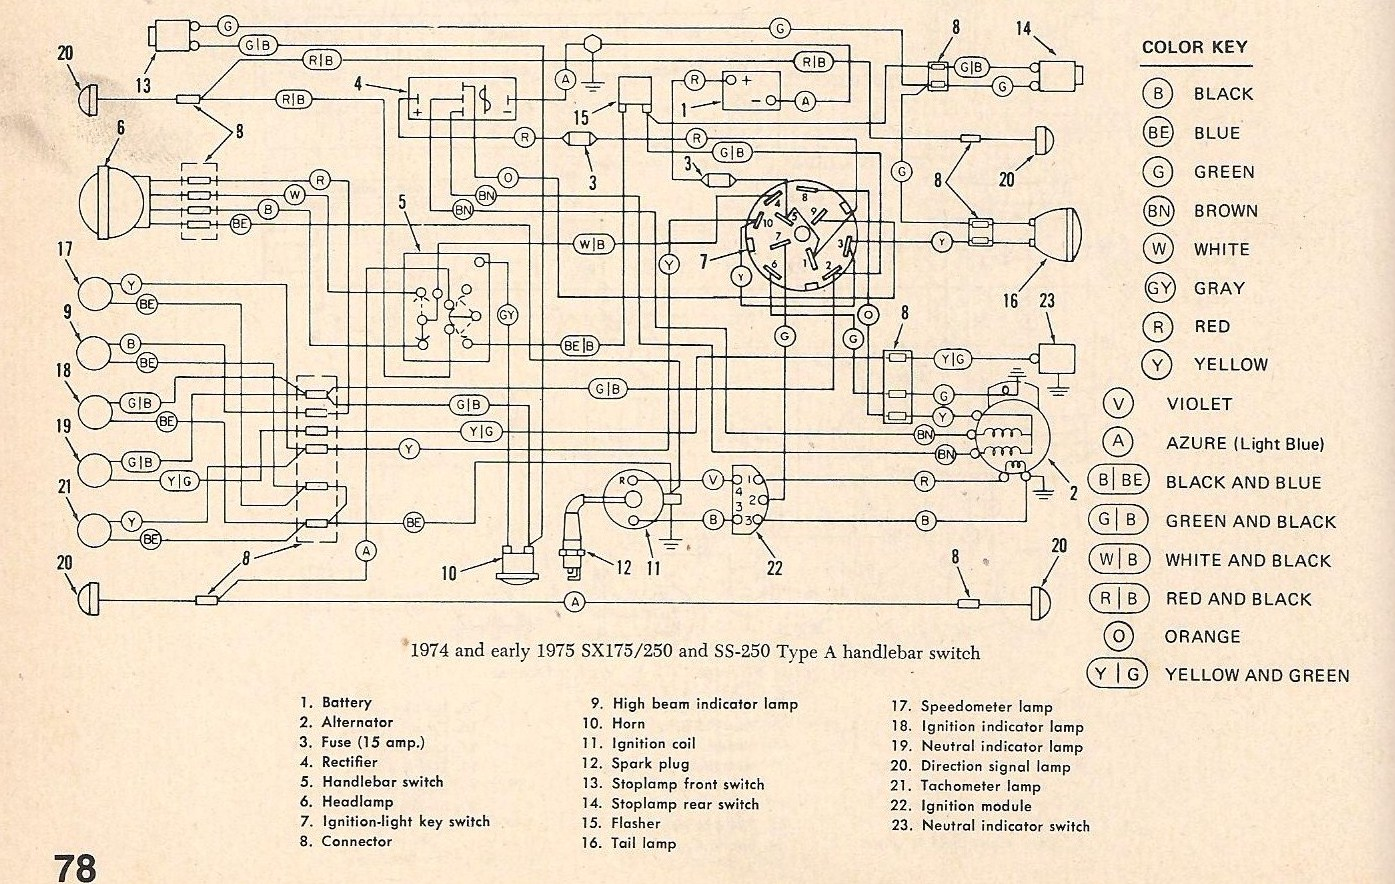 2011 06 10_005822_sx_250_type_a_001 for a 1975 250 endoro amf harley davidson wireing diagram from 2011 isuzu dyna wiring diagram at gsmx.co